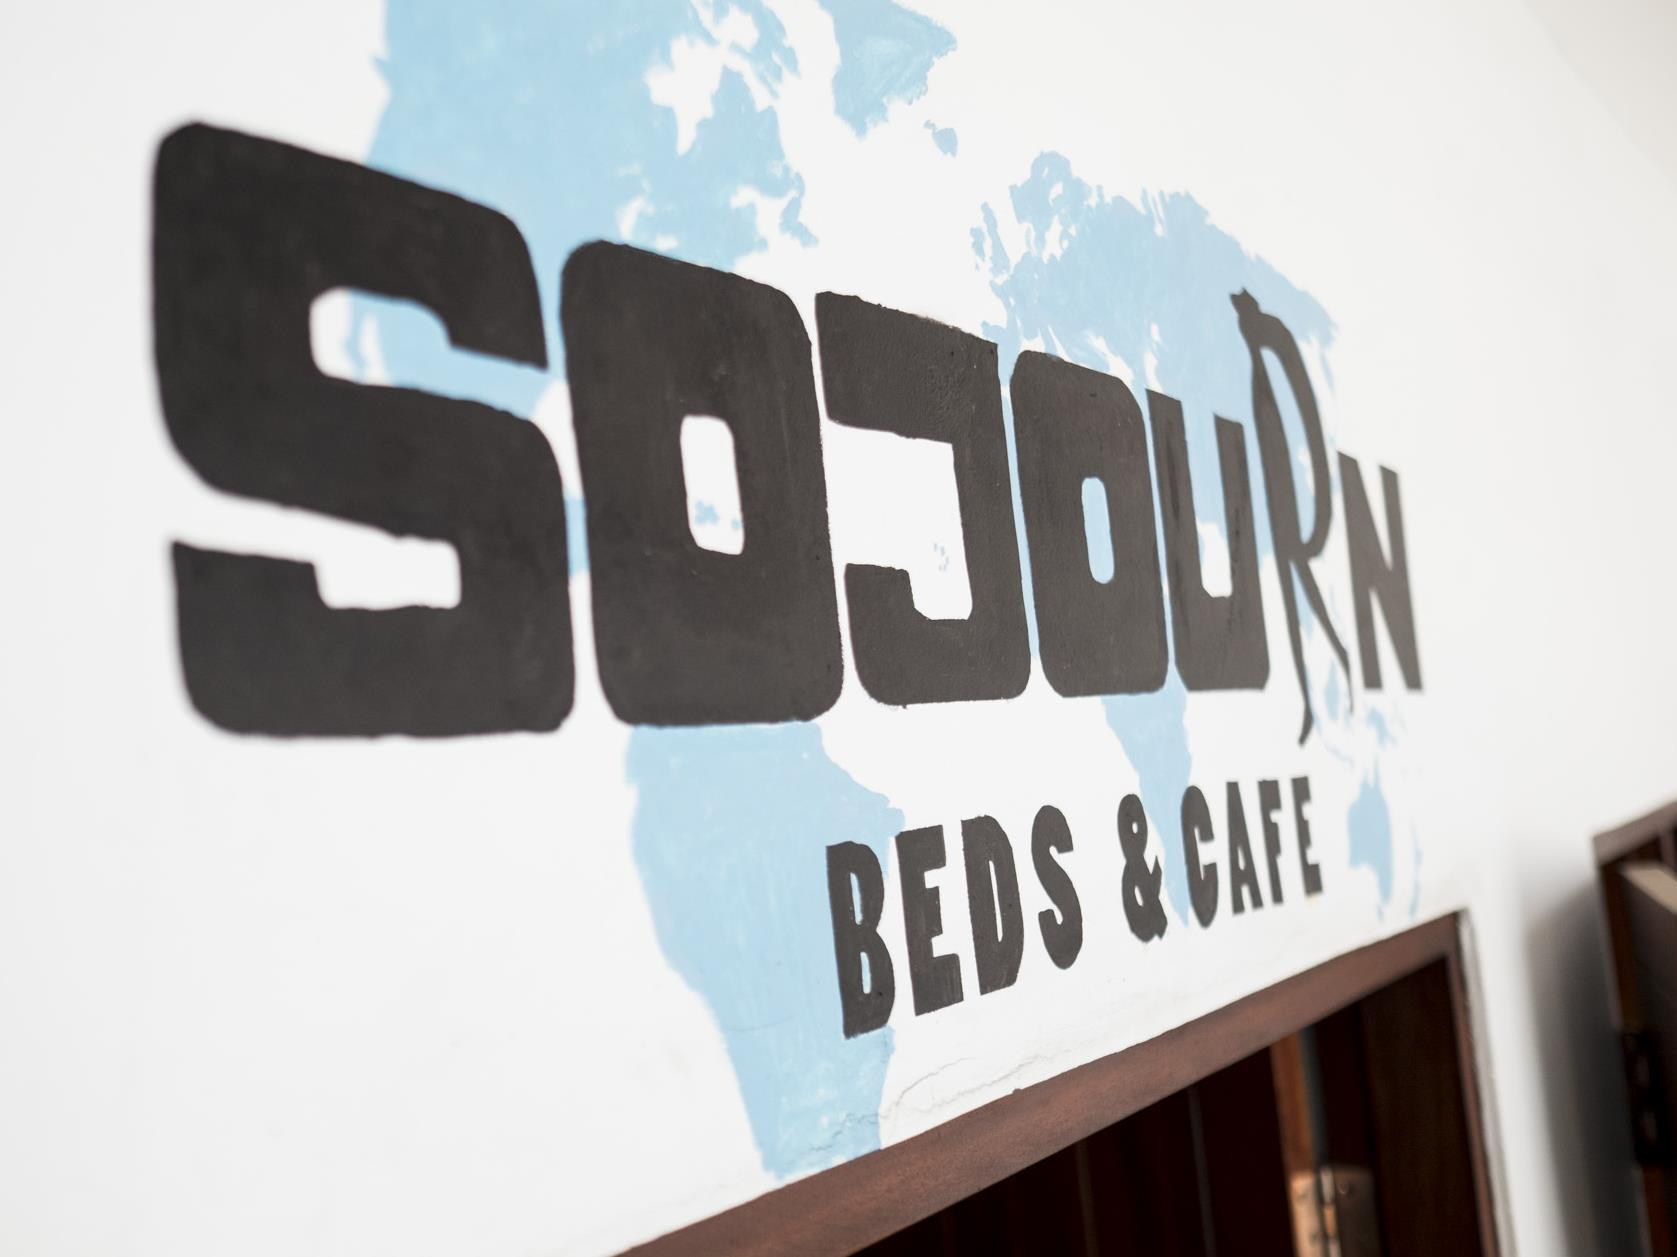 Sojourn Beds And Cafe